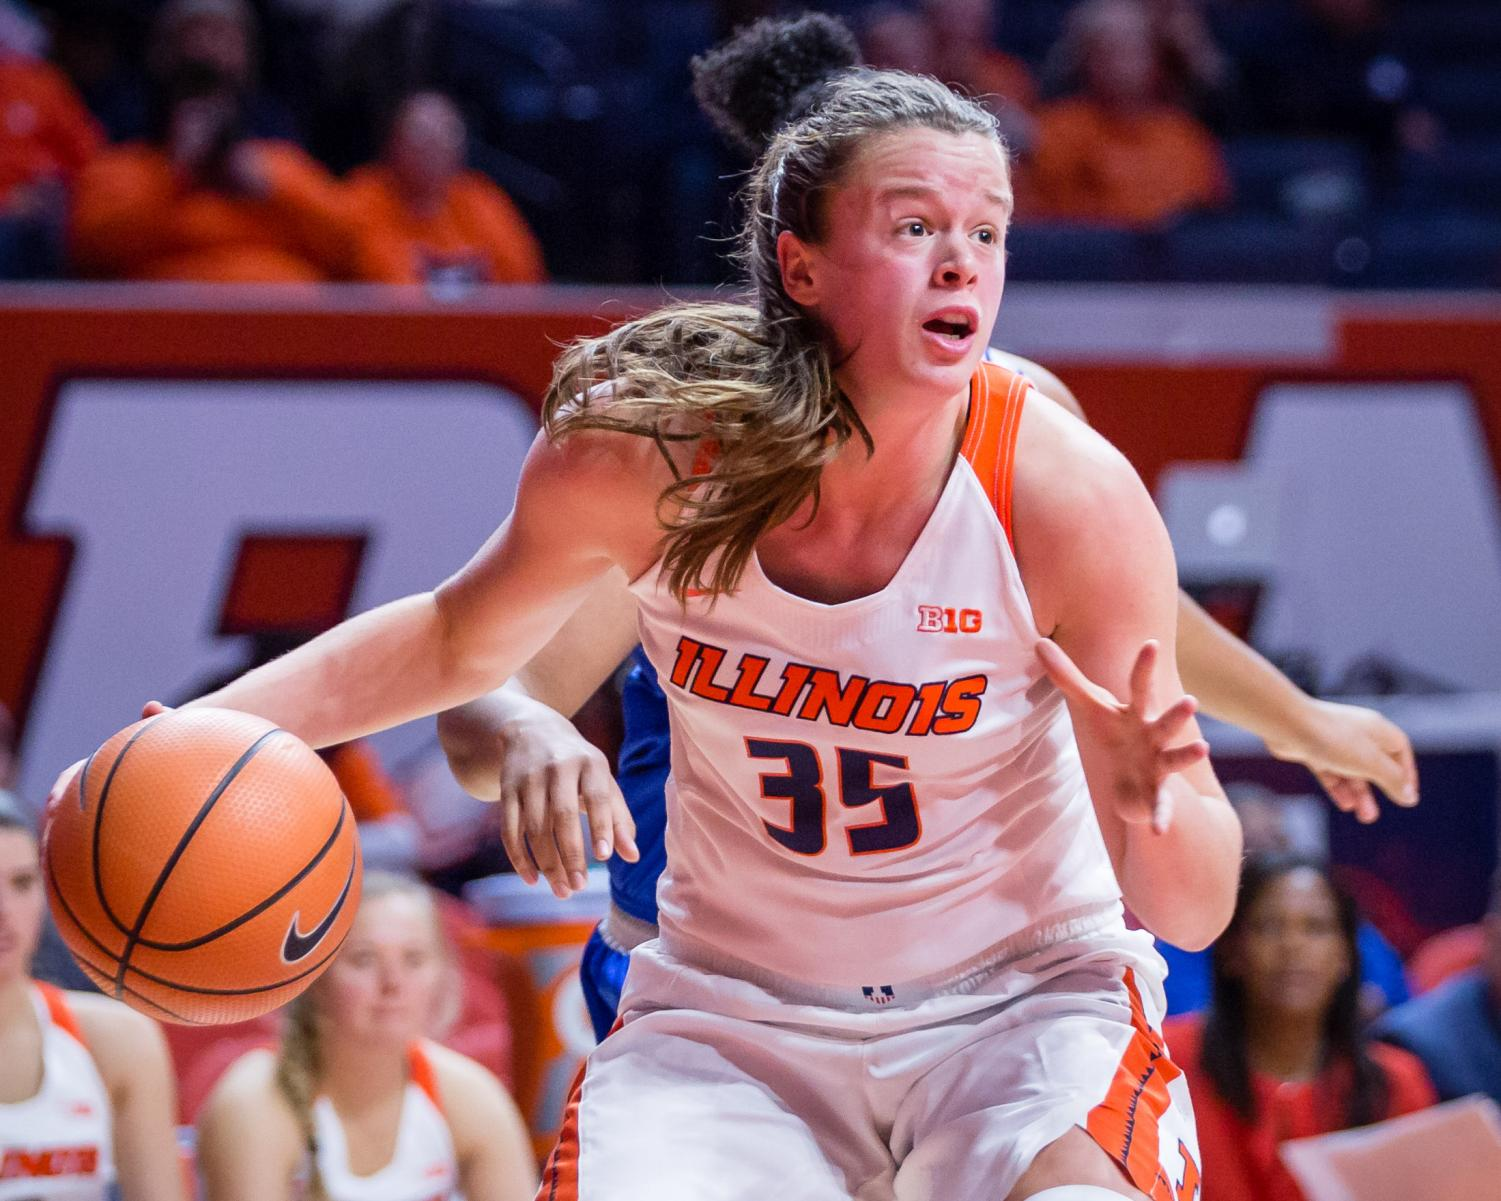 Illinois forward Alex Wittinger dribbles to the basket during the game against Fort Wayne at State Farm Center on Friday, Nov. 10. The Illini won 64-50.